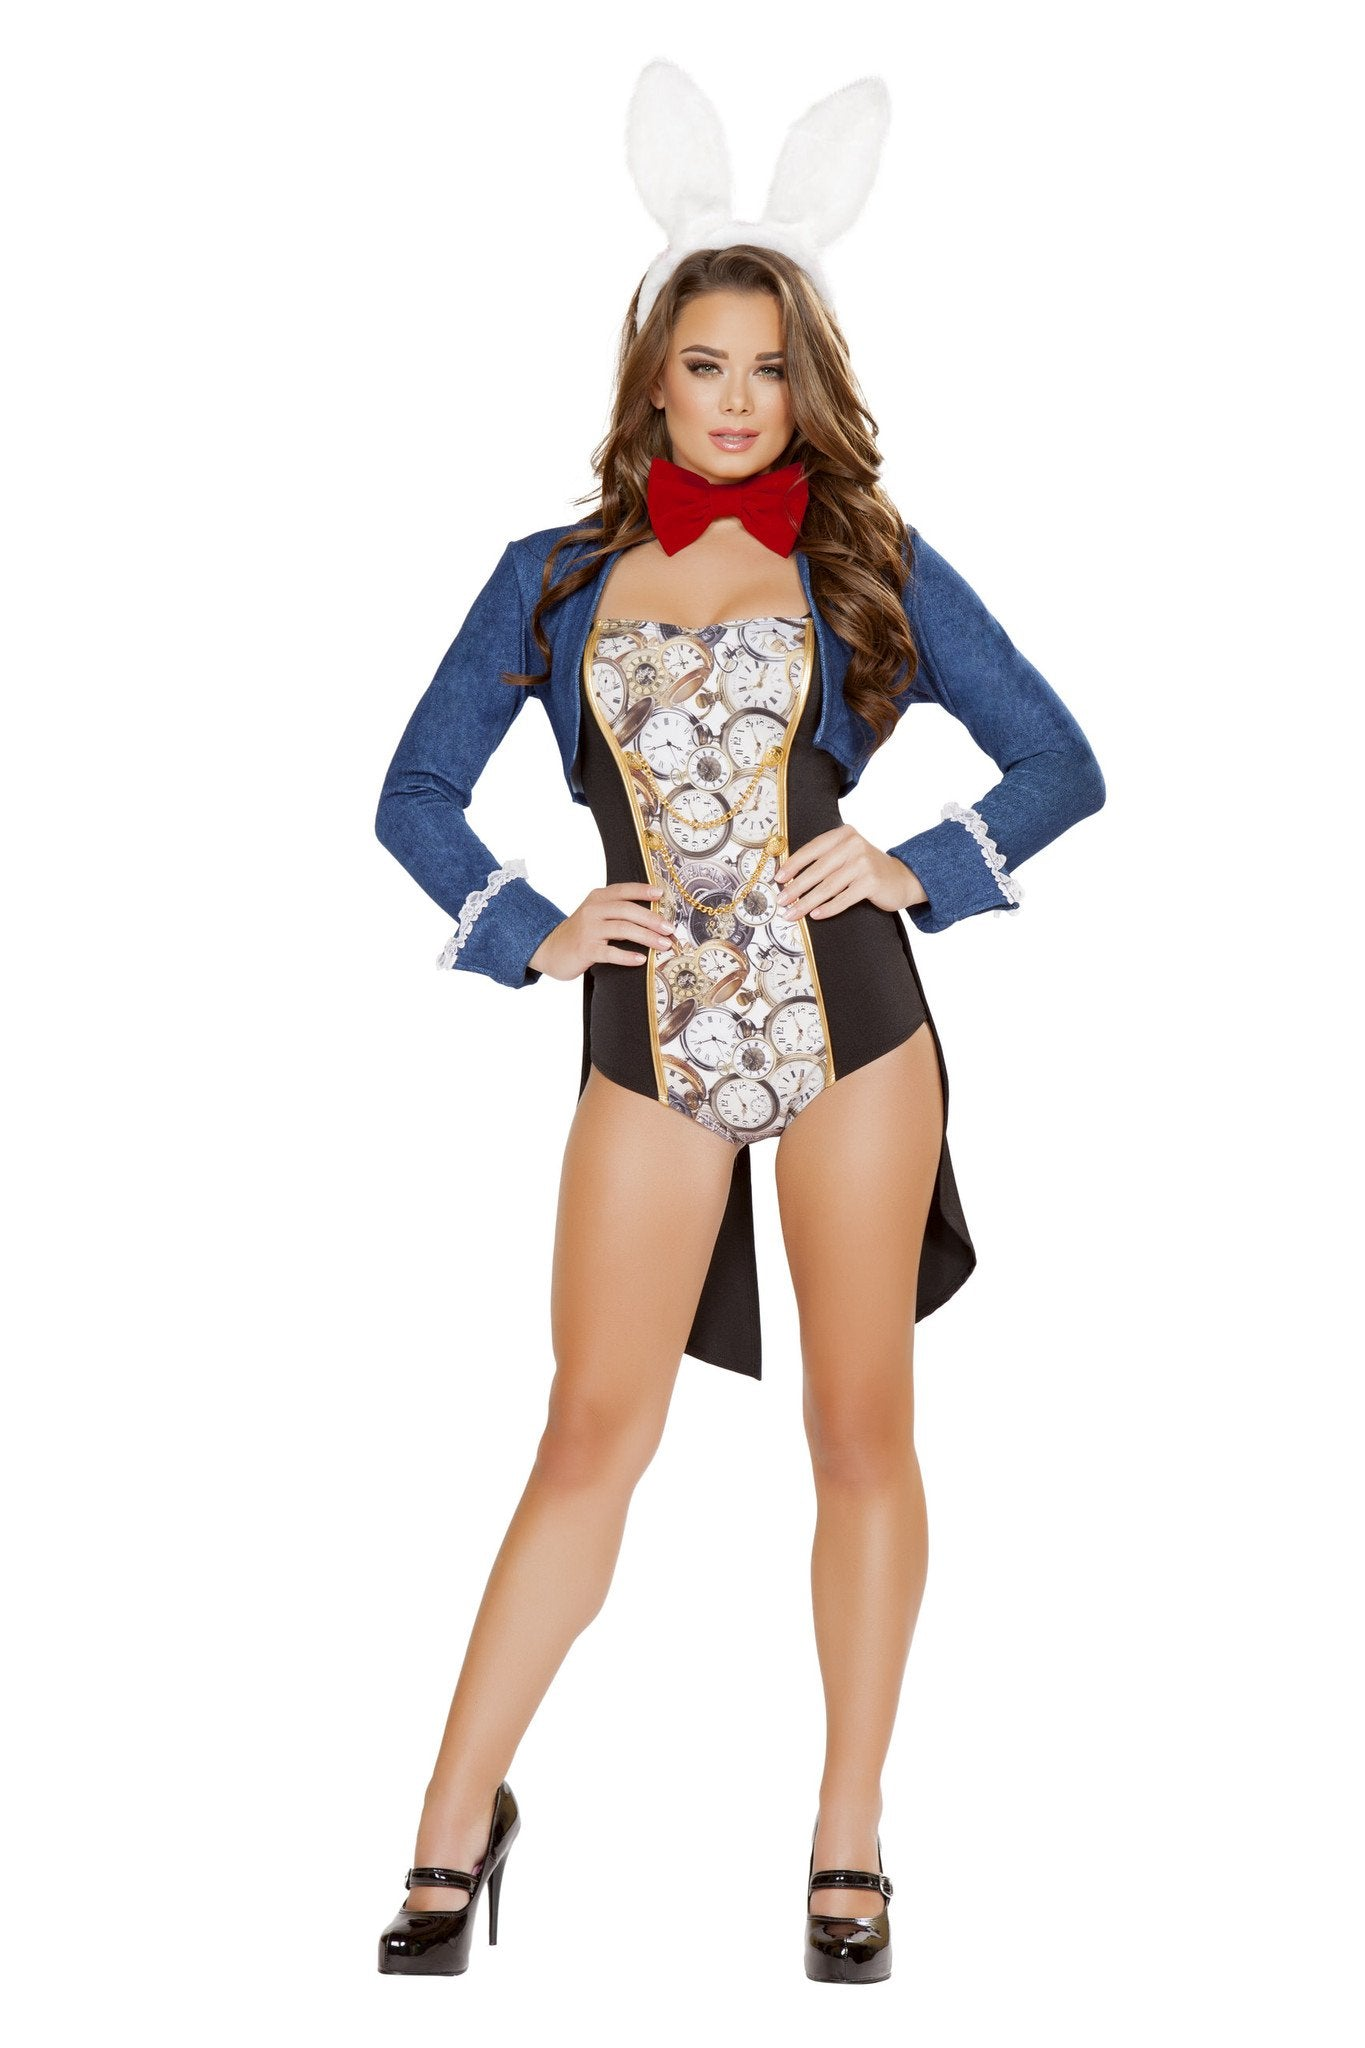 Buy 4730 - 4pc Jittery Rabbit from Rave Fix for $67.50 with Same Day Shipping Designed by Roma Costume 4730-AS-L